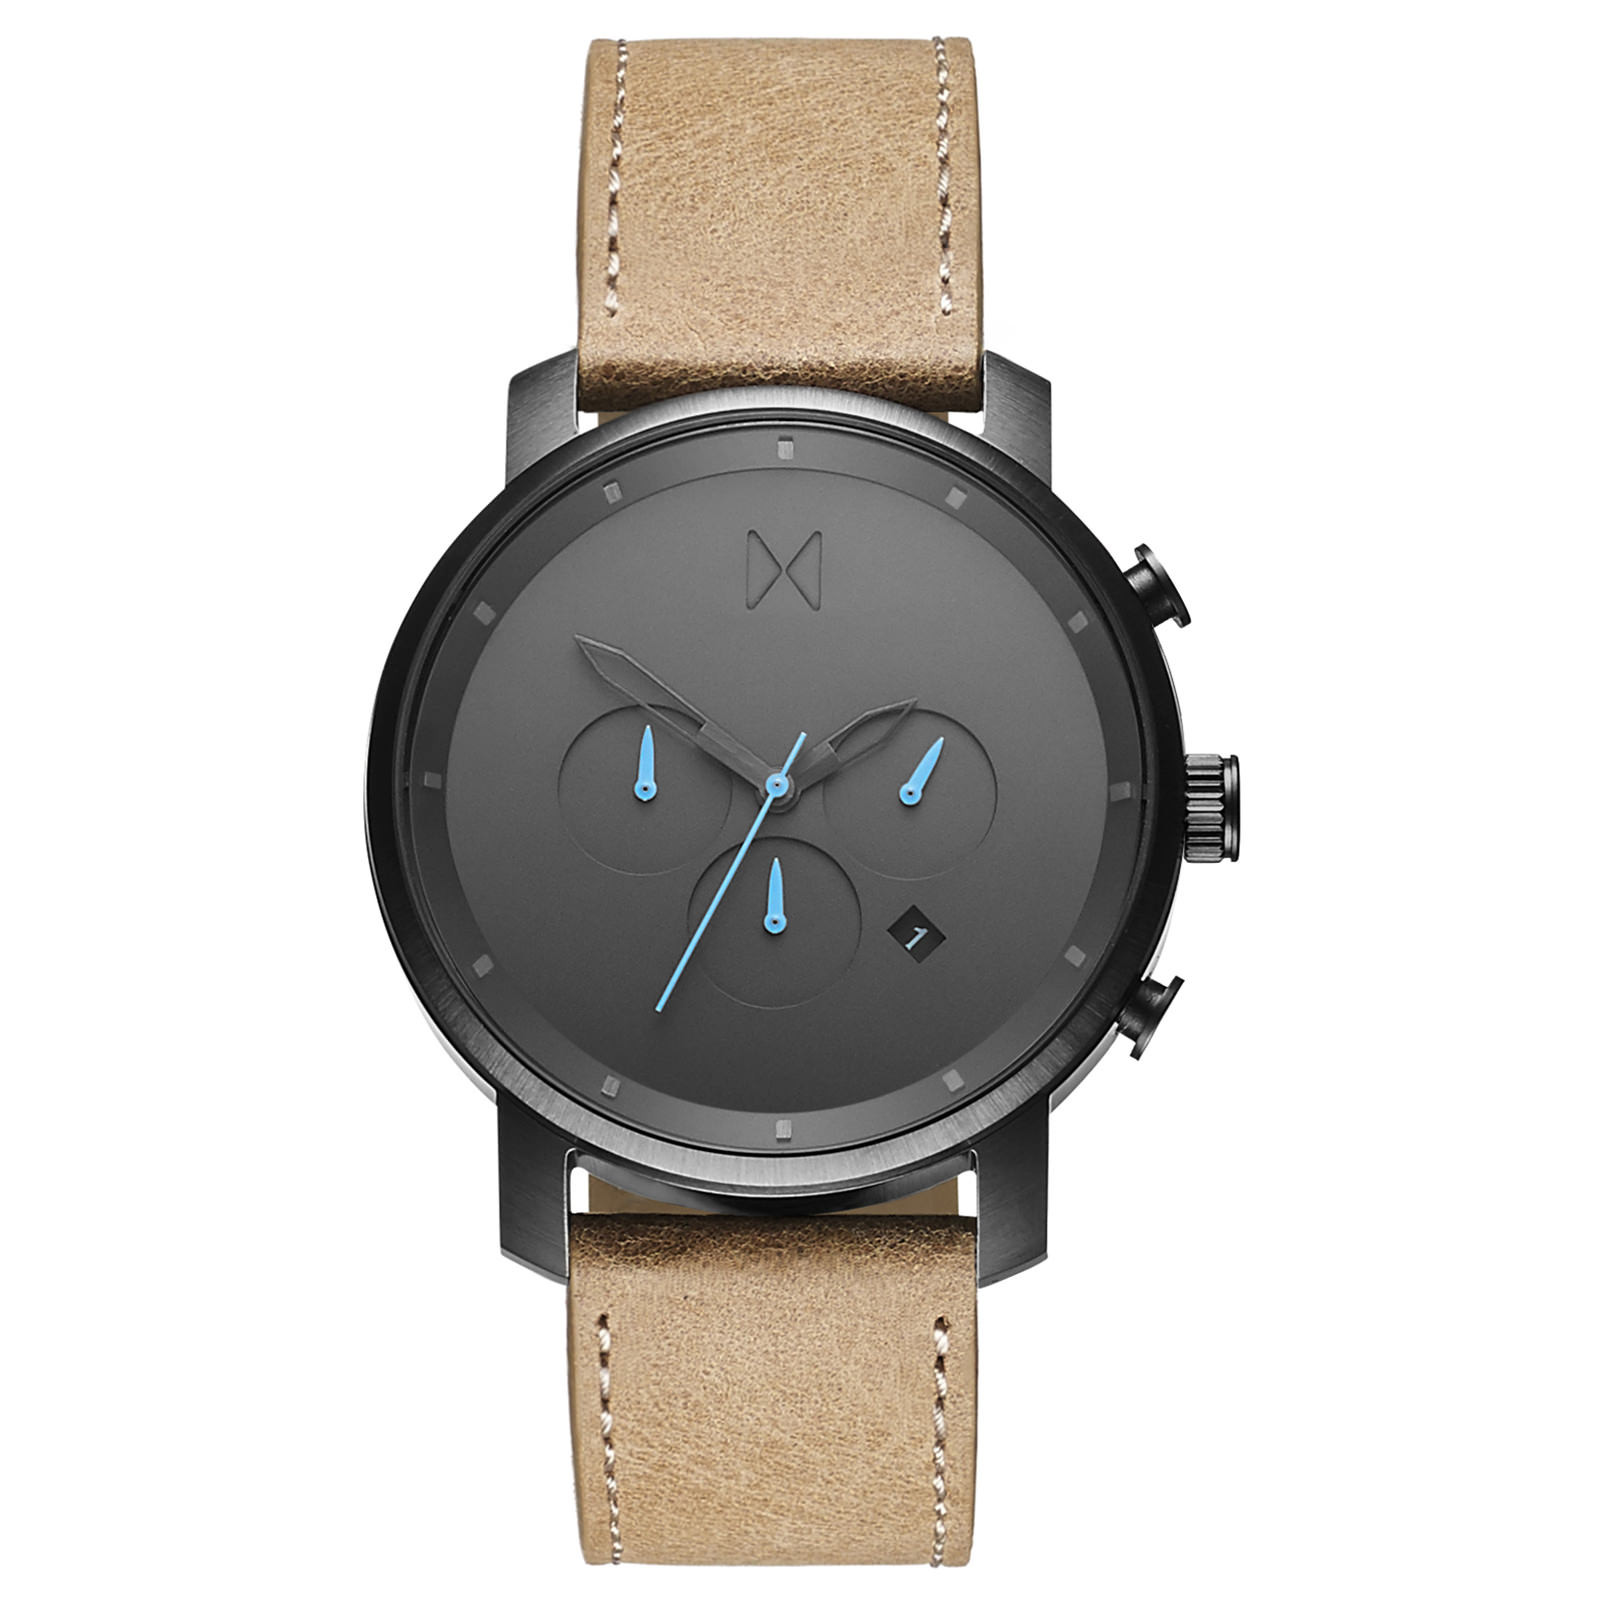 MVMT Chrono Gunmetal/Sandstone Leather